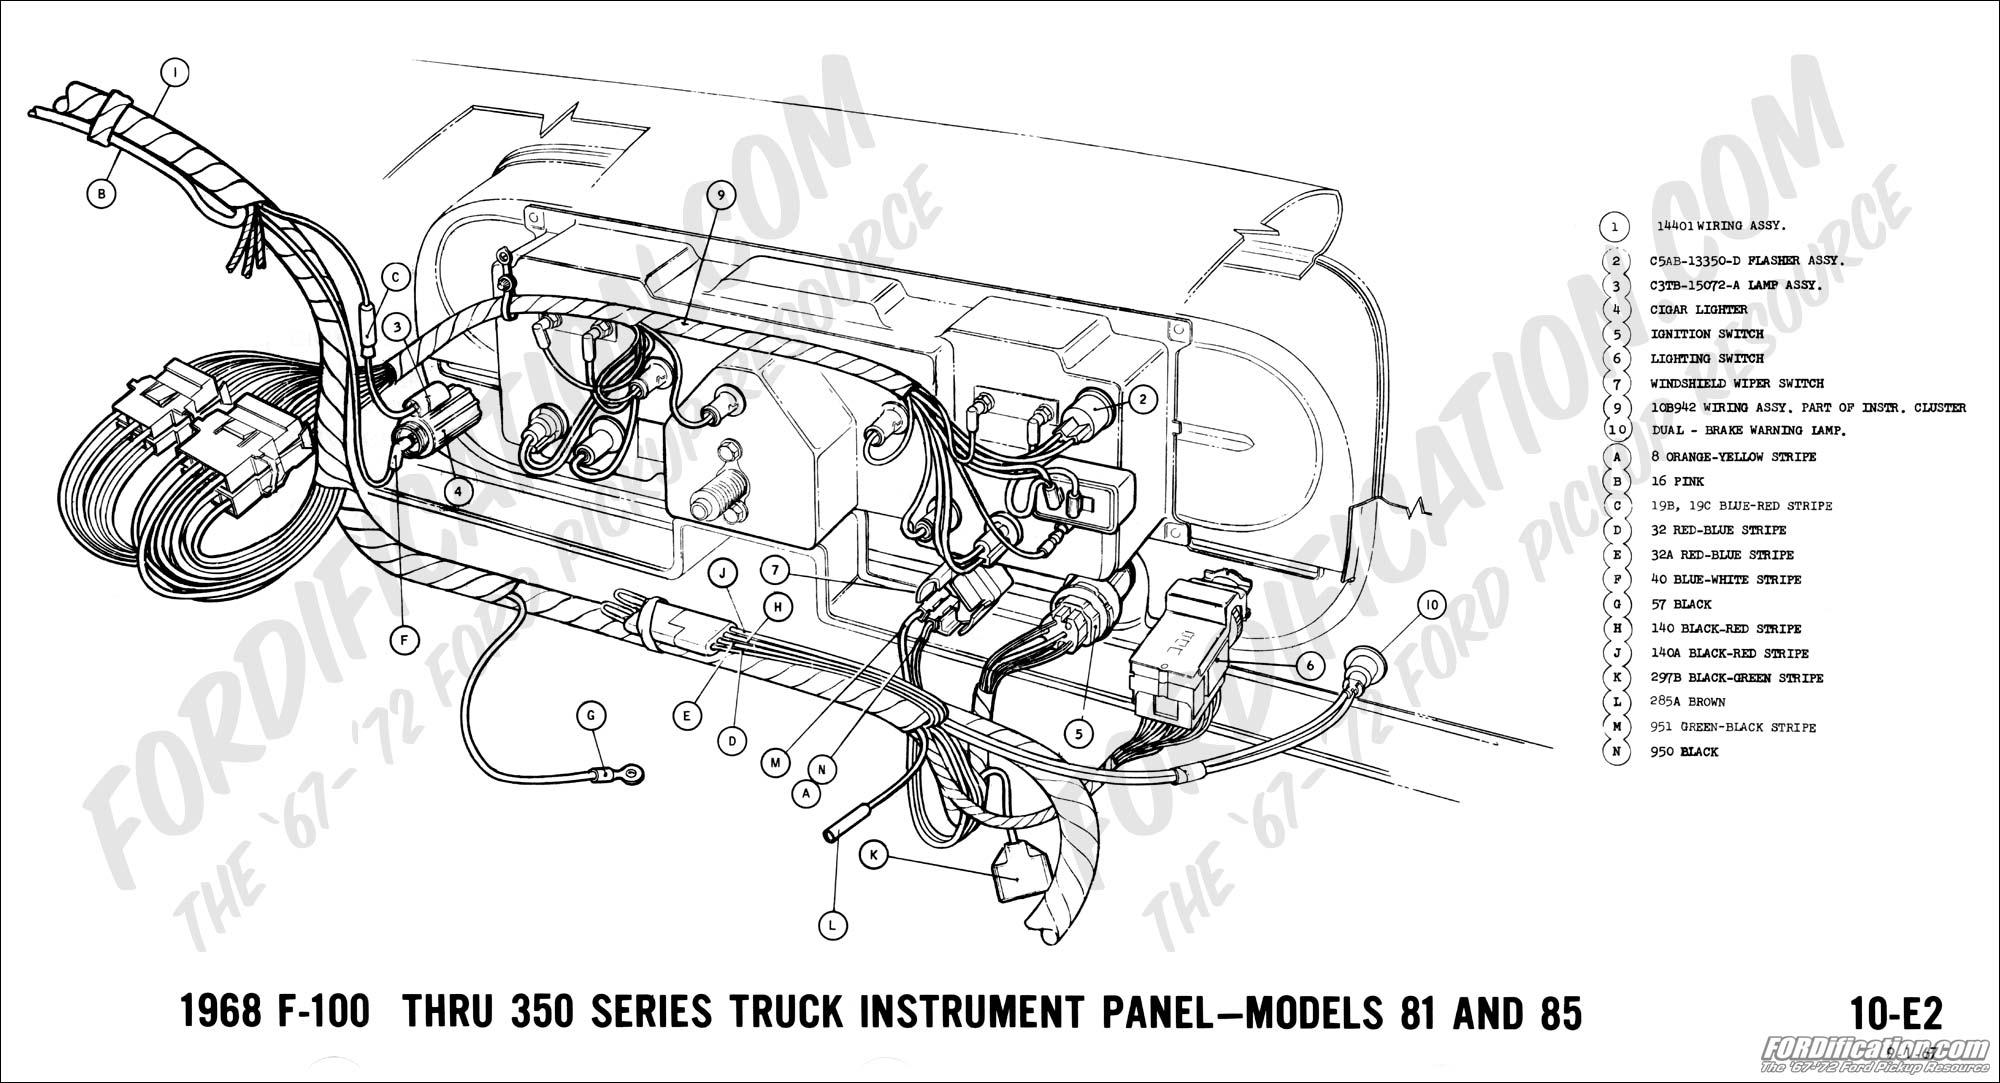 1963 ford f100 wiring diagram  ford  auto wiring diagram